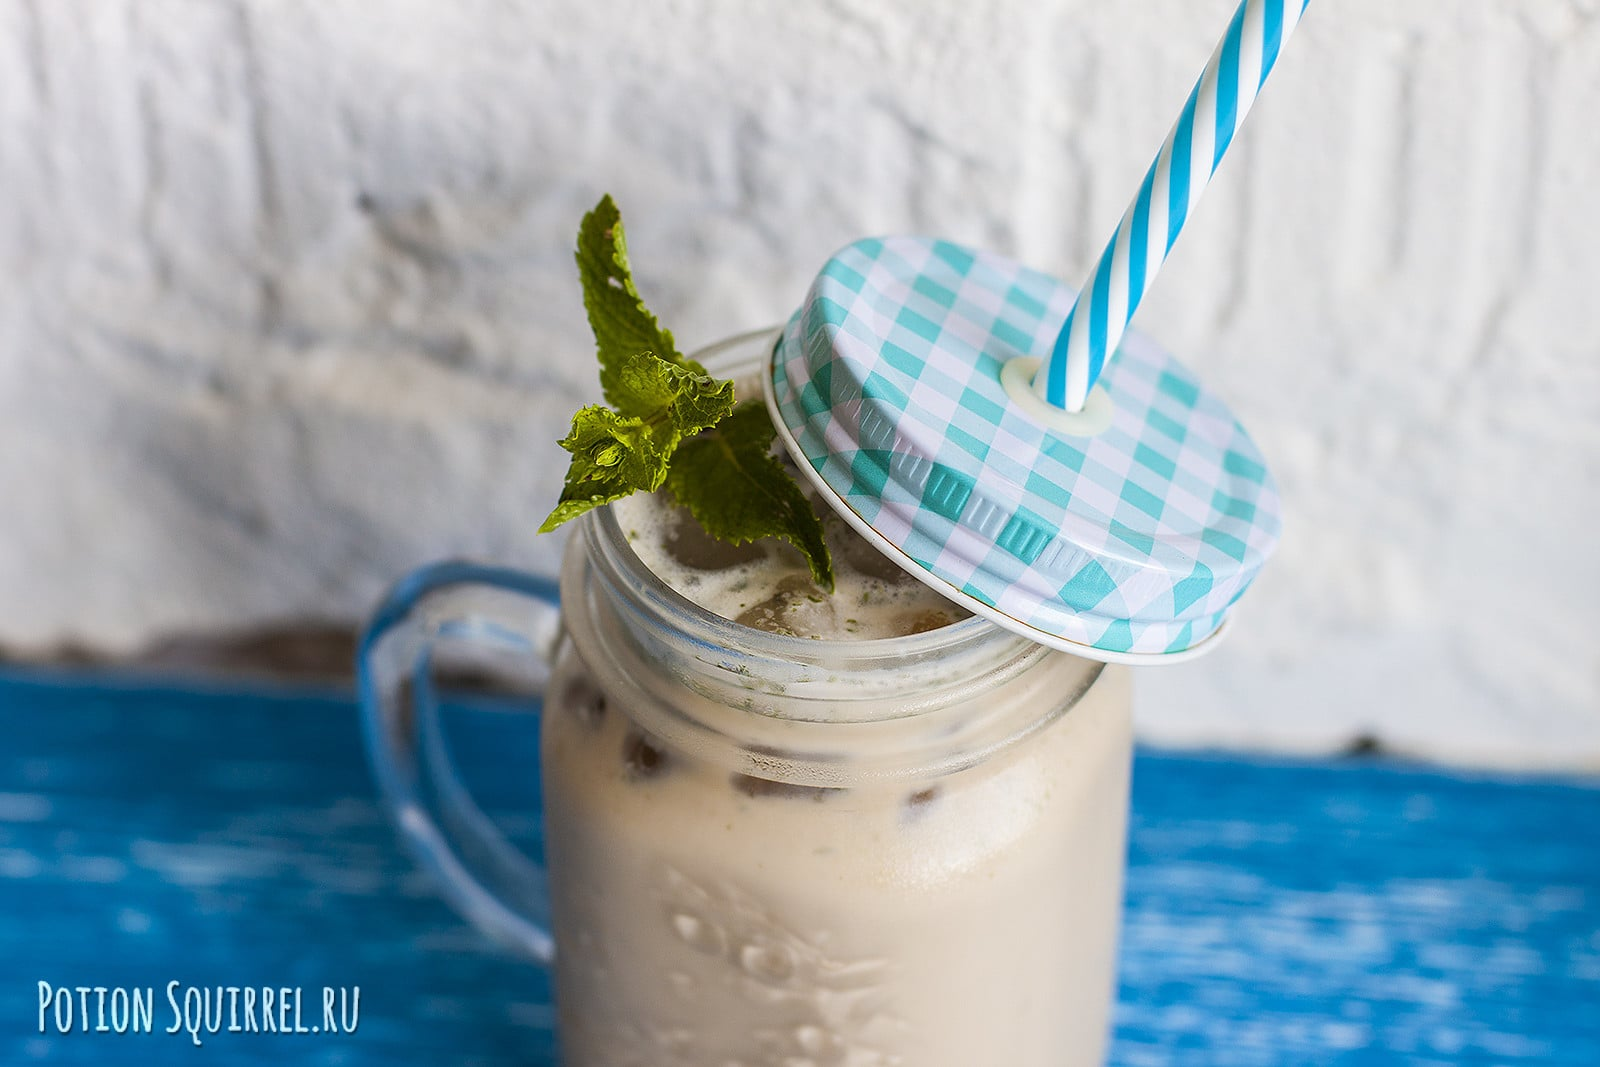 The recipe for mint frappe from potionsquirrel.ru